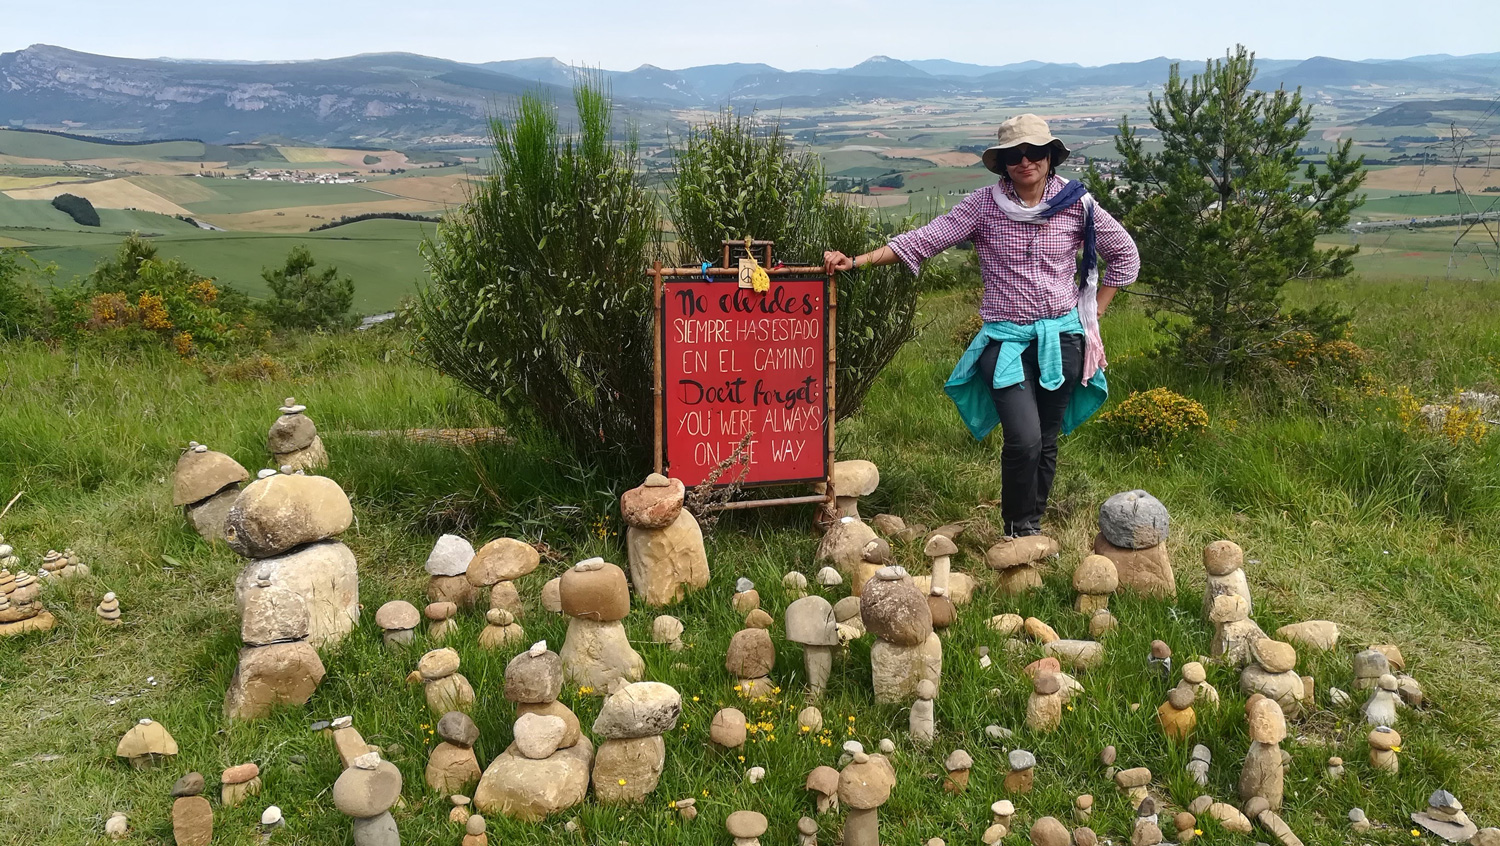 Where's the Faith? An Indian Woman Walks the 800-km Camino de Santiago Pilgrimage